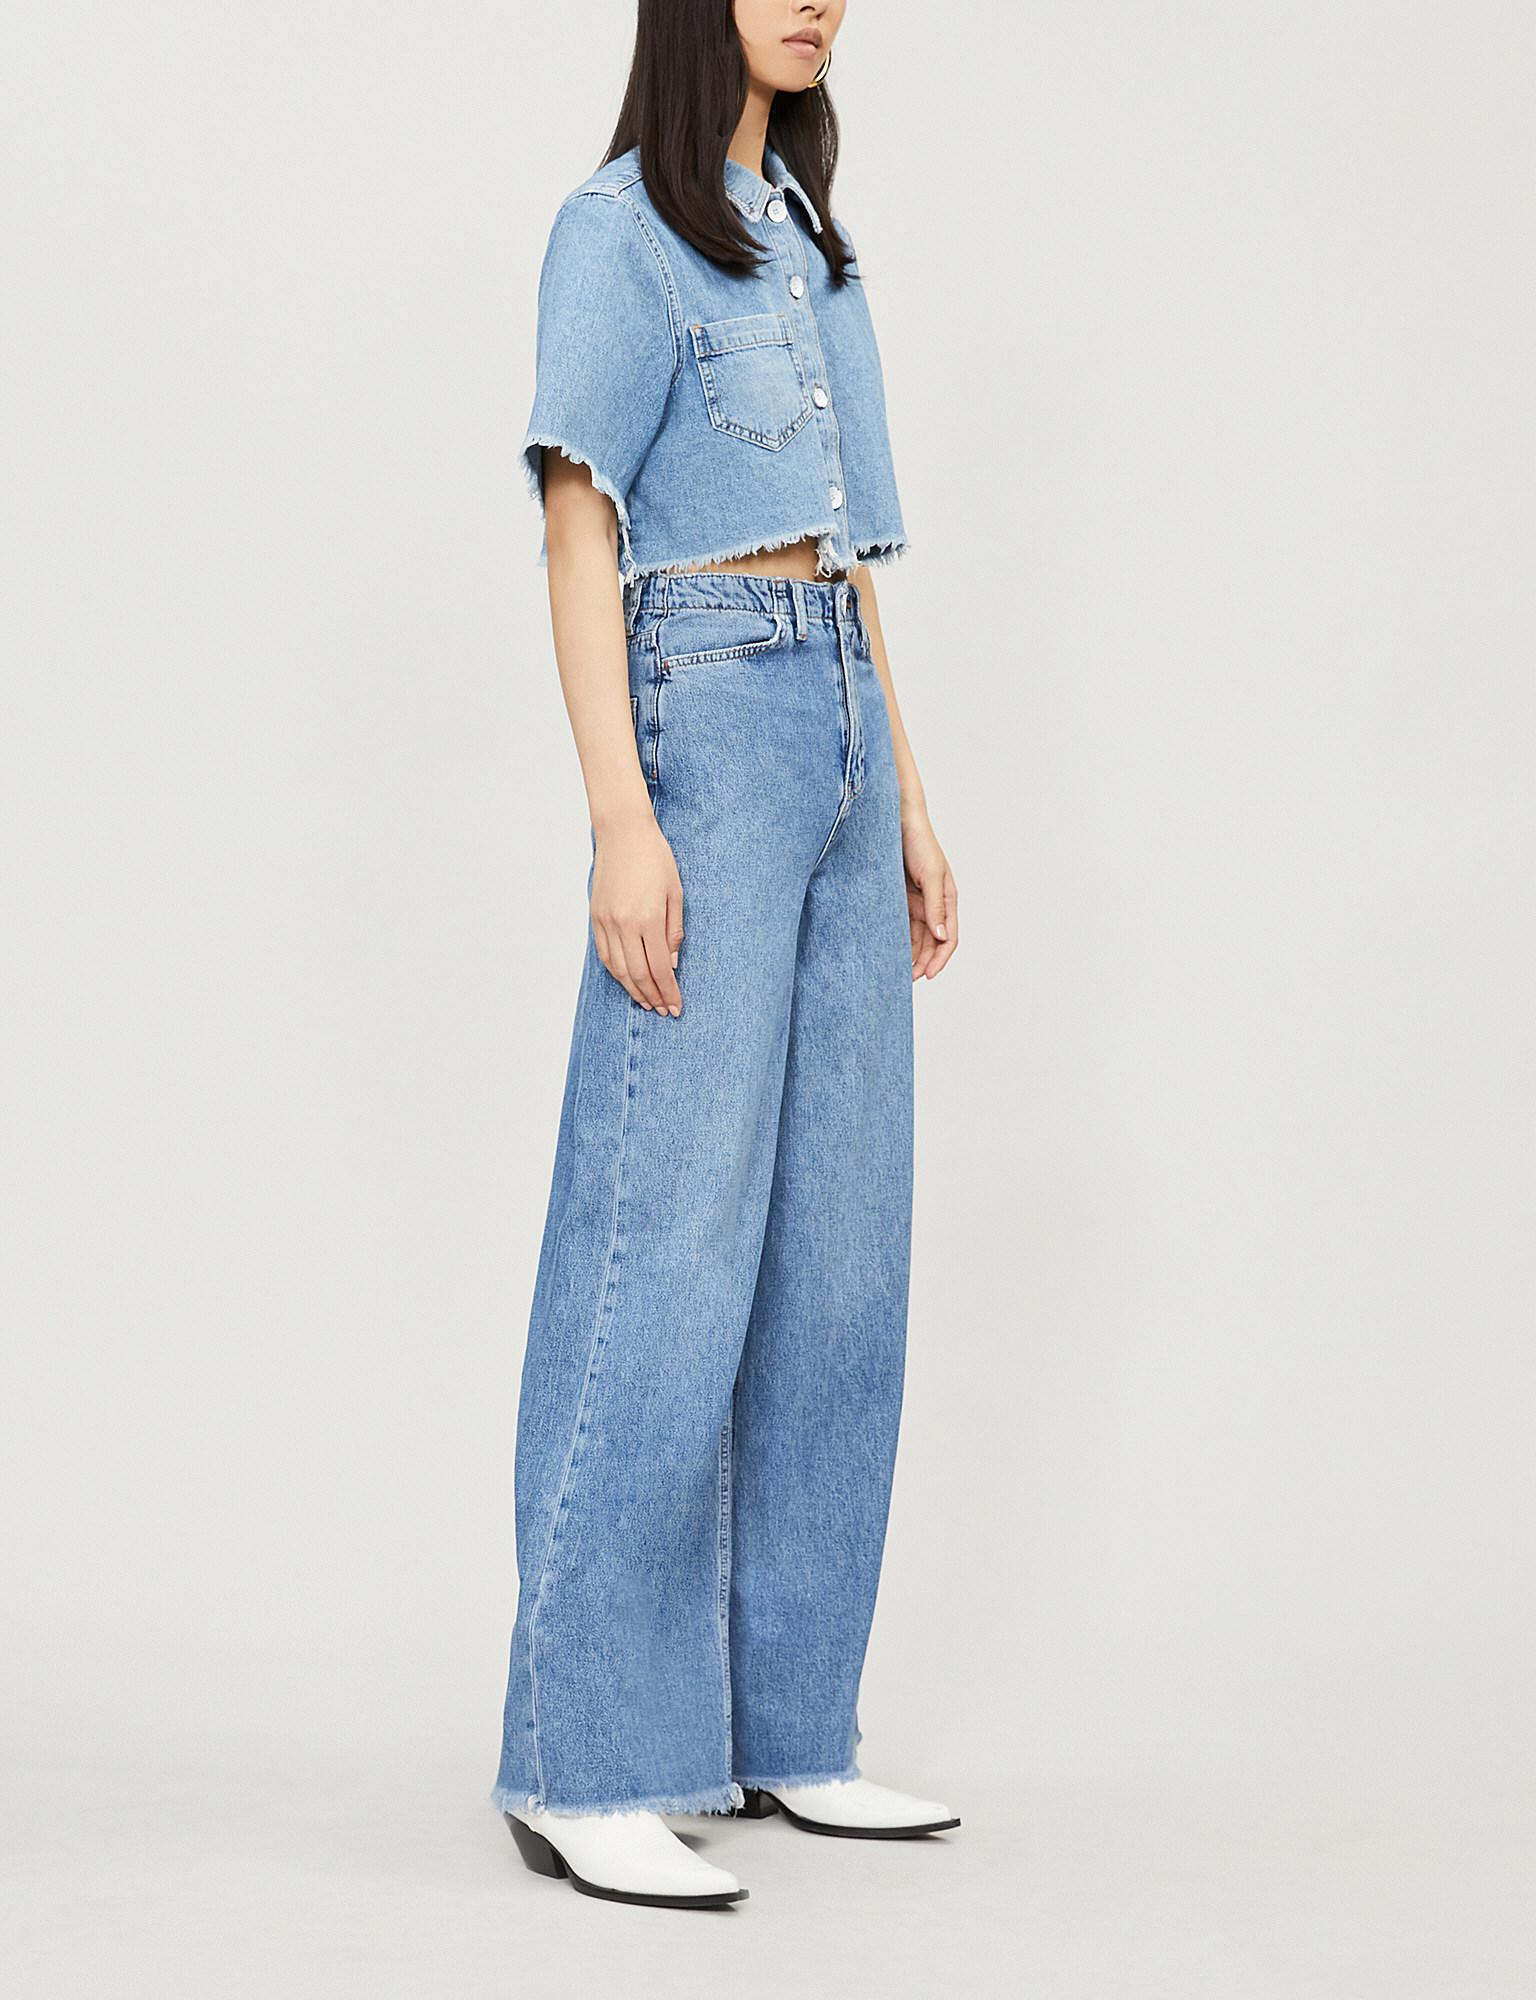 bac6a55315c37 Lyst - Free People Dust In The Wind Denim Co-ord Set in Blue